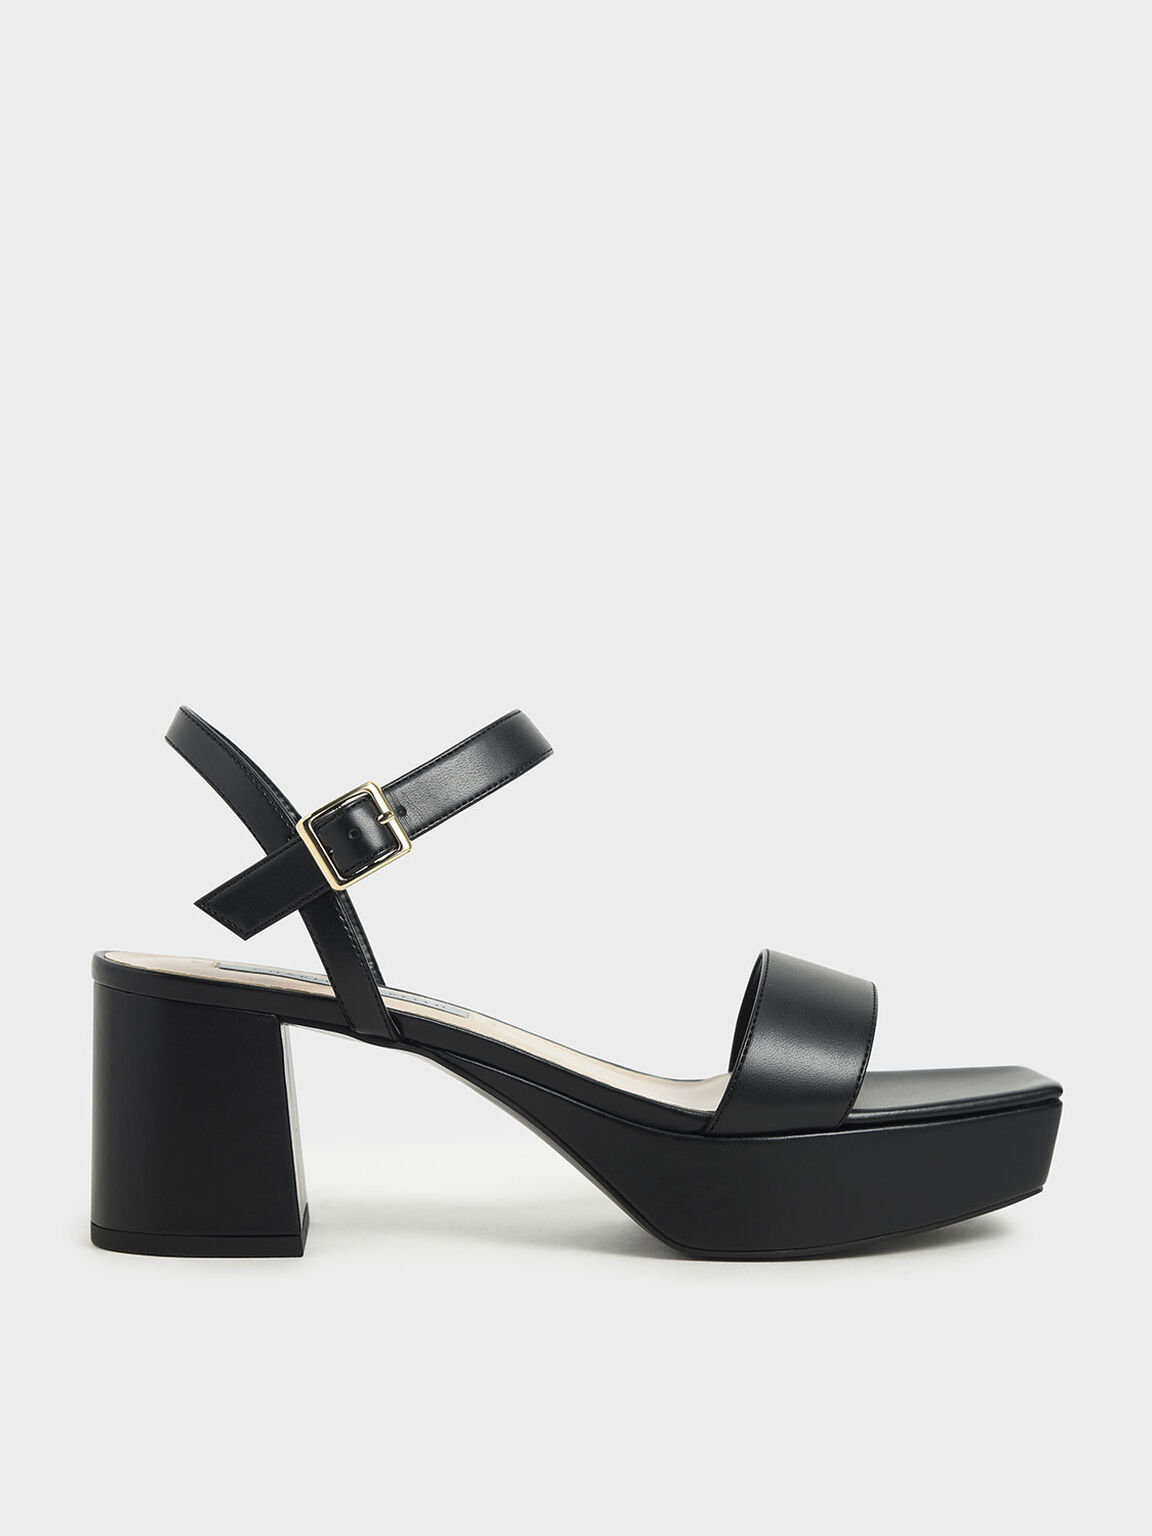 Ankle Strap Platform Sandals, Black, hi-res